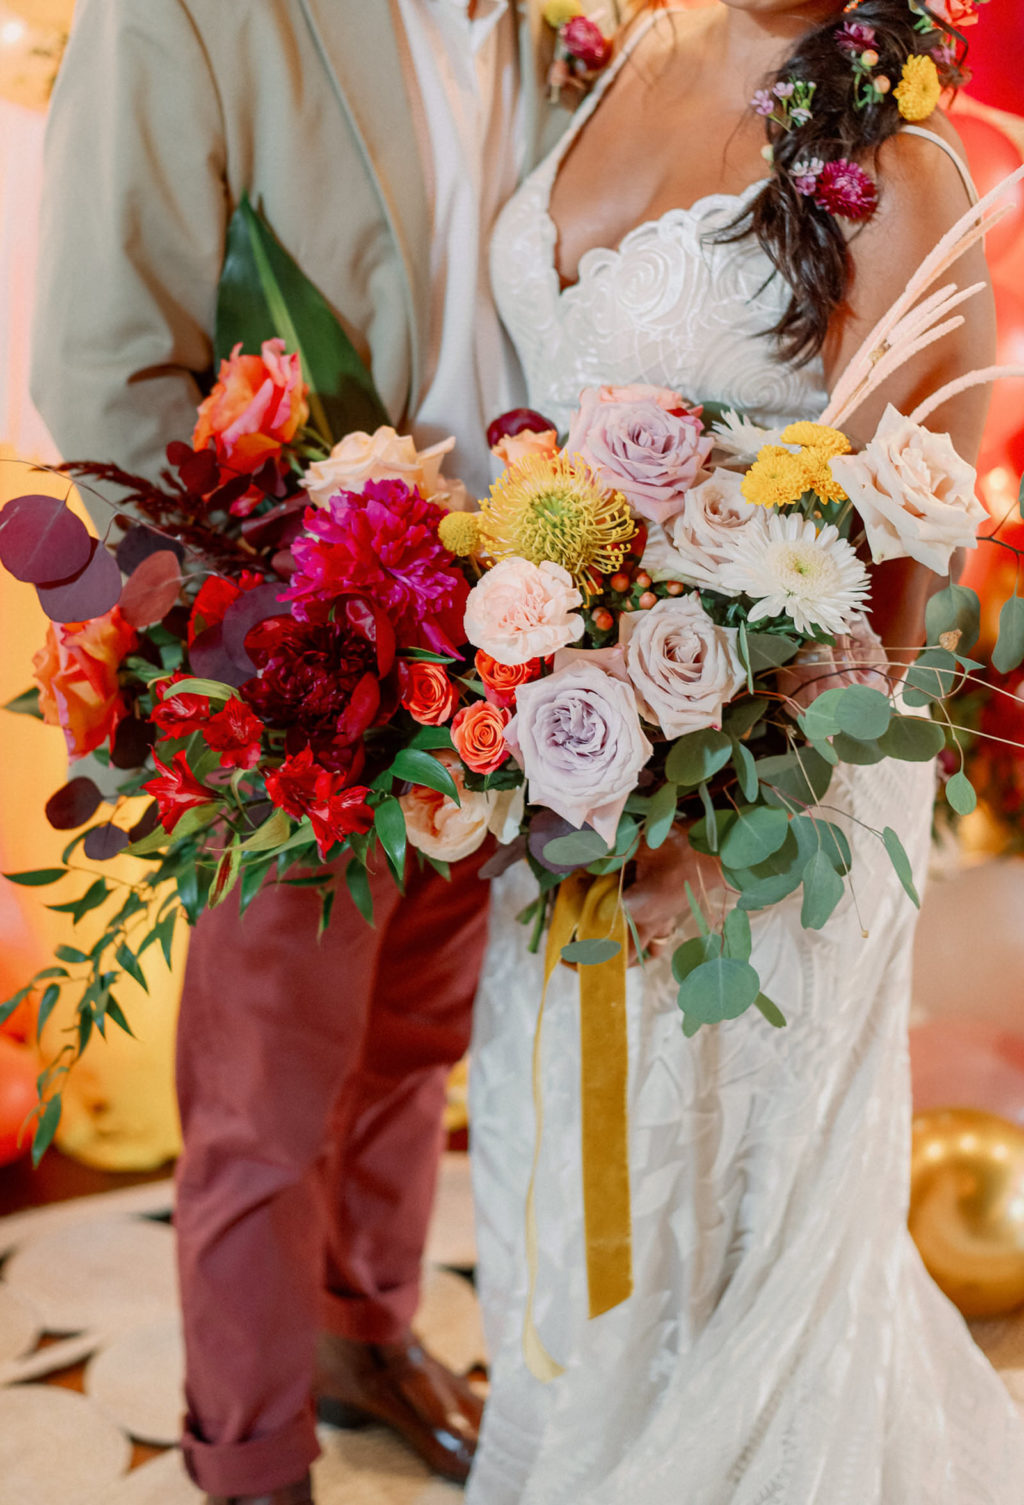 Whimsical and Colorful Bridal Bouquet, Lilac and Blush Pink Roses, Eucalyptus, Yellow Pin Cushion Protea, Red Eucalyptus, Red Flowers and Greenery   Tampa Bay Wedding Photographer Dewitt for Love